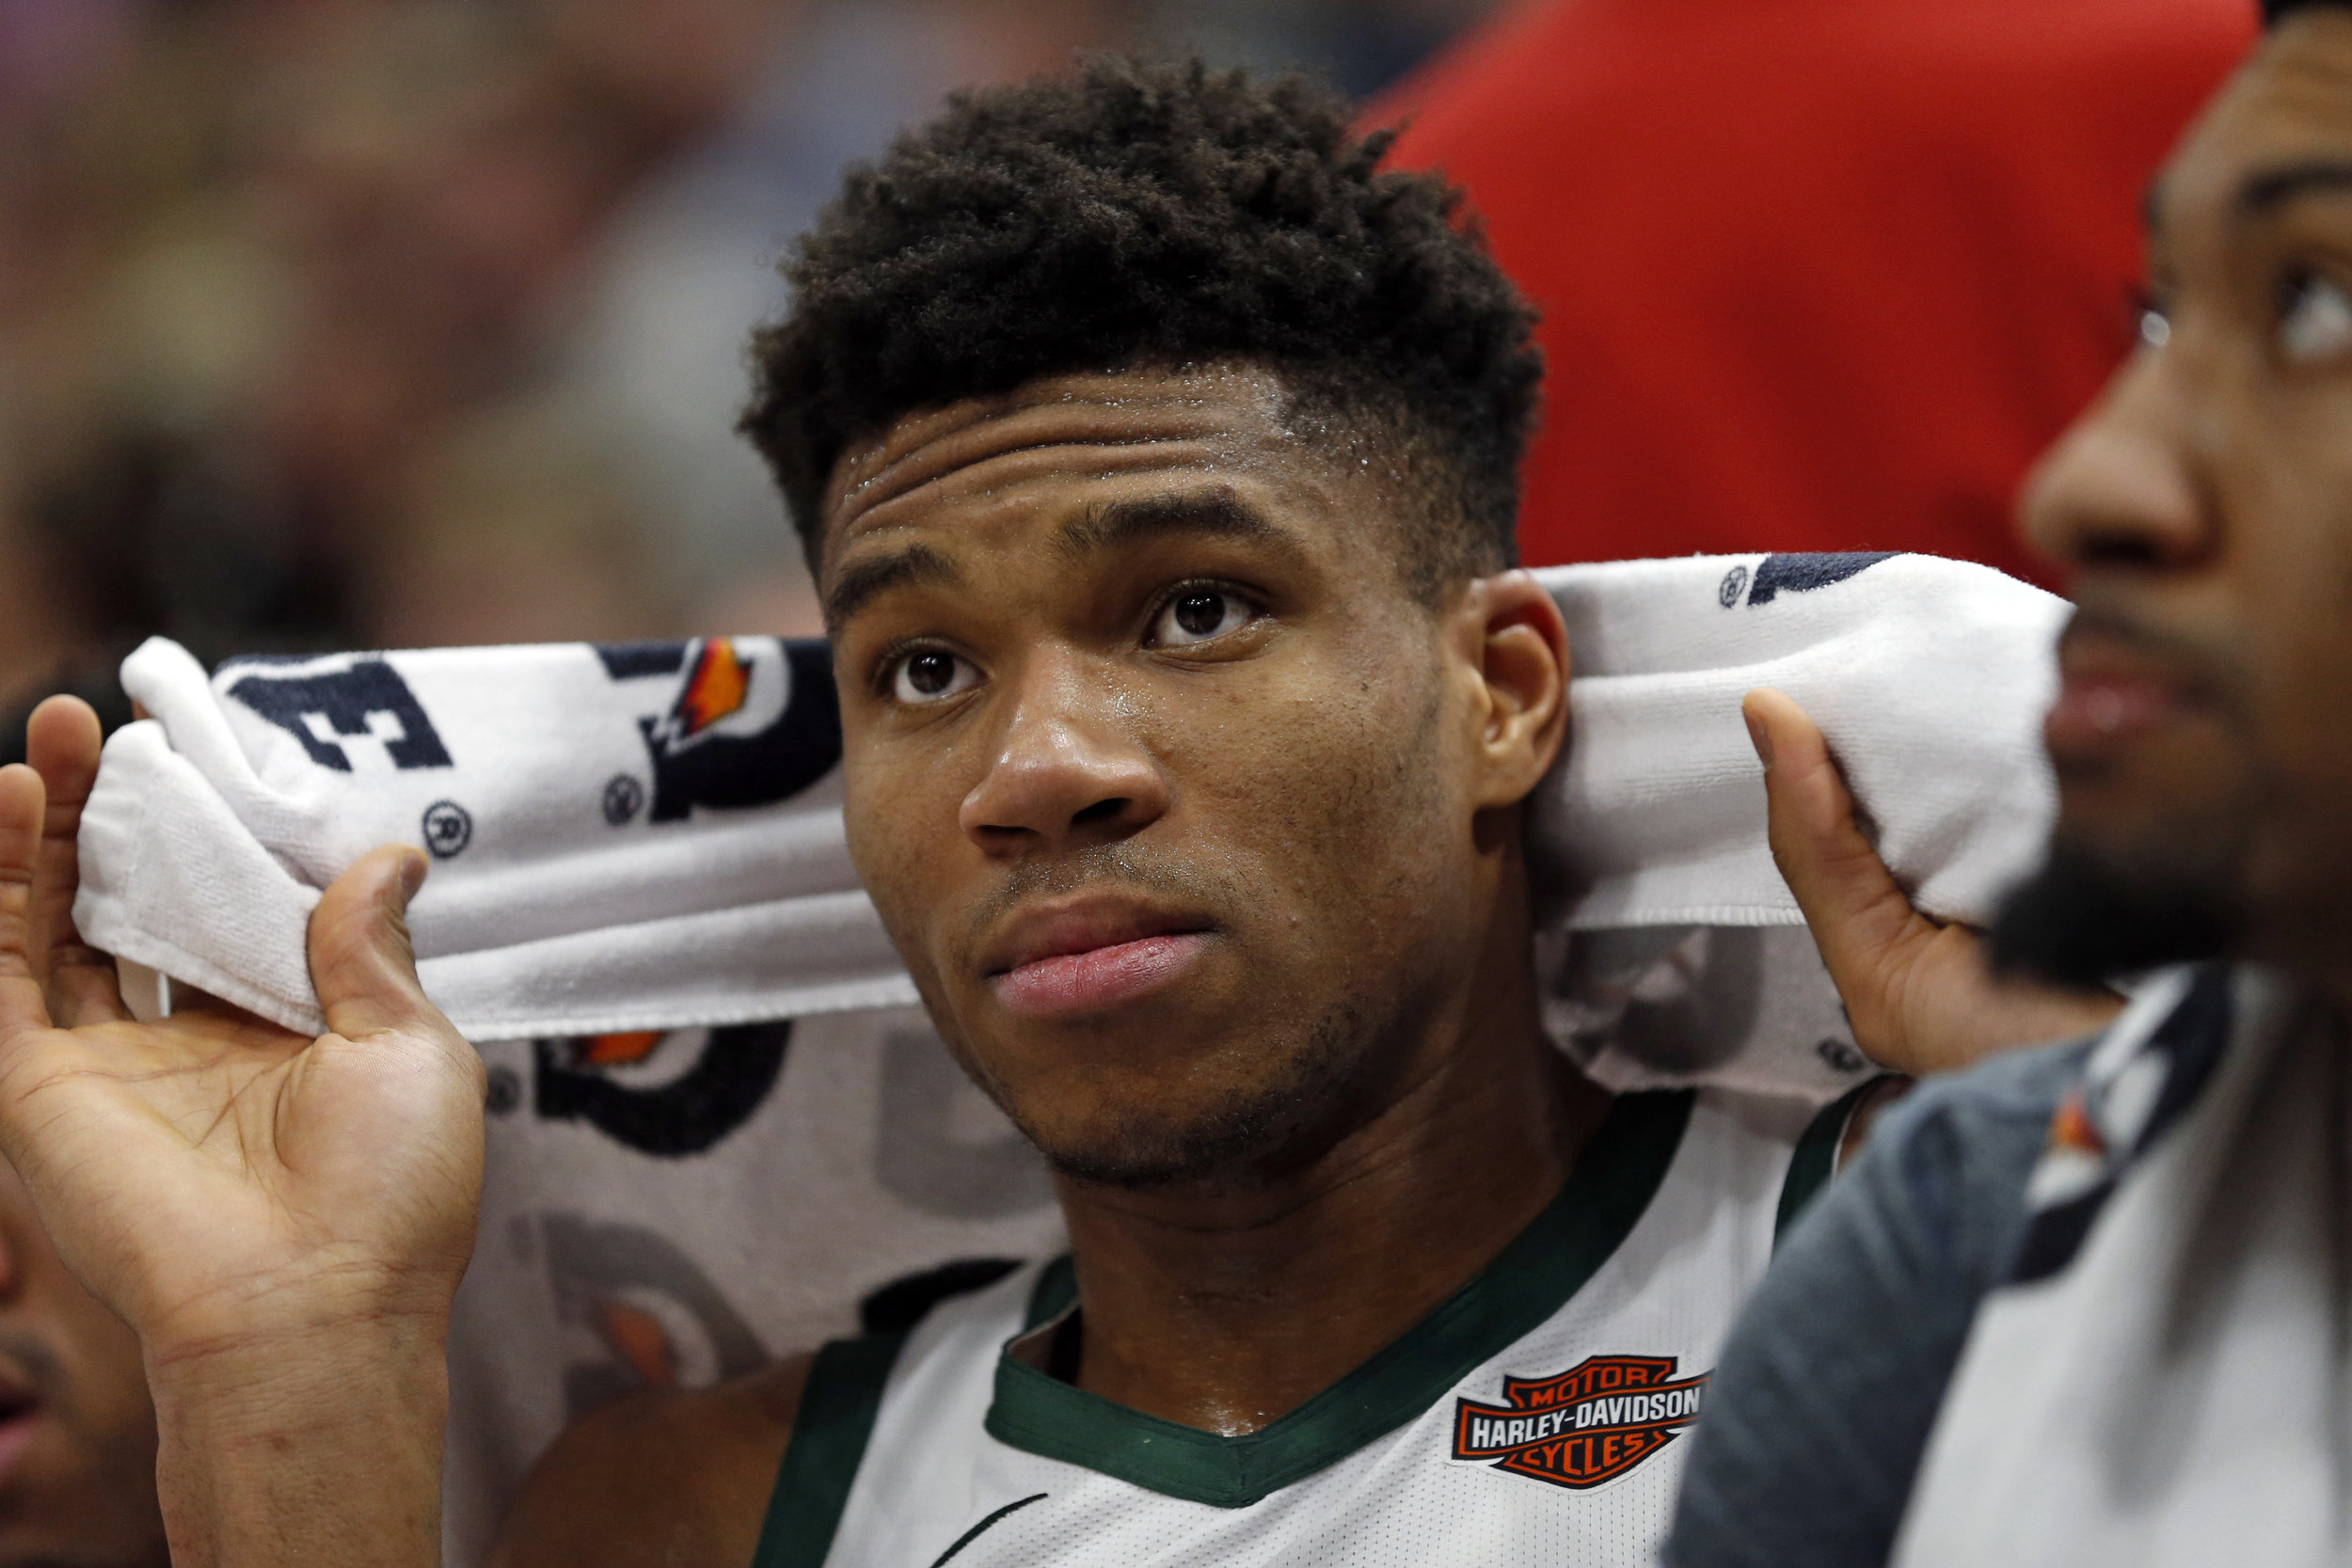 Milwaukee Bucks forward Giannis Antetokounmpo sits on the bench during the second half of an NBA basketball game against the Utah Jazz on Saturday, March 2, 2019, in Salt Lake City. (AP Photo/Rick Bowmer)